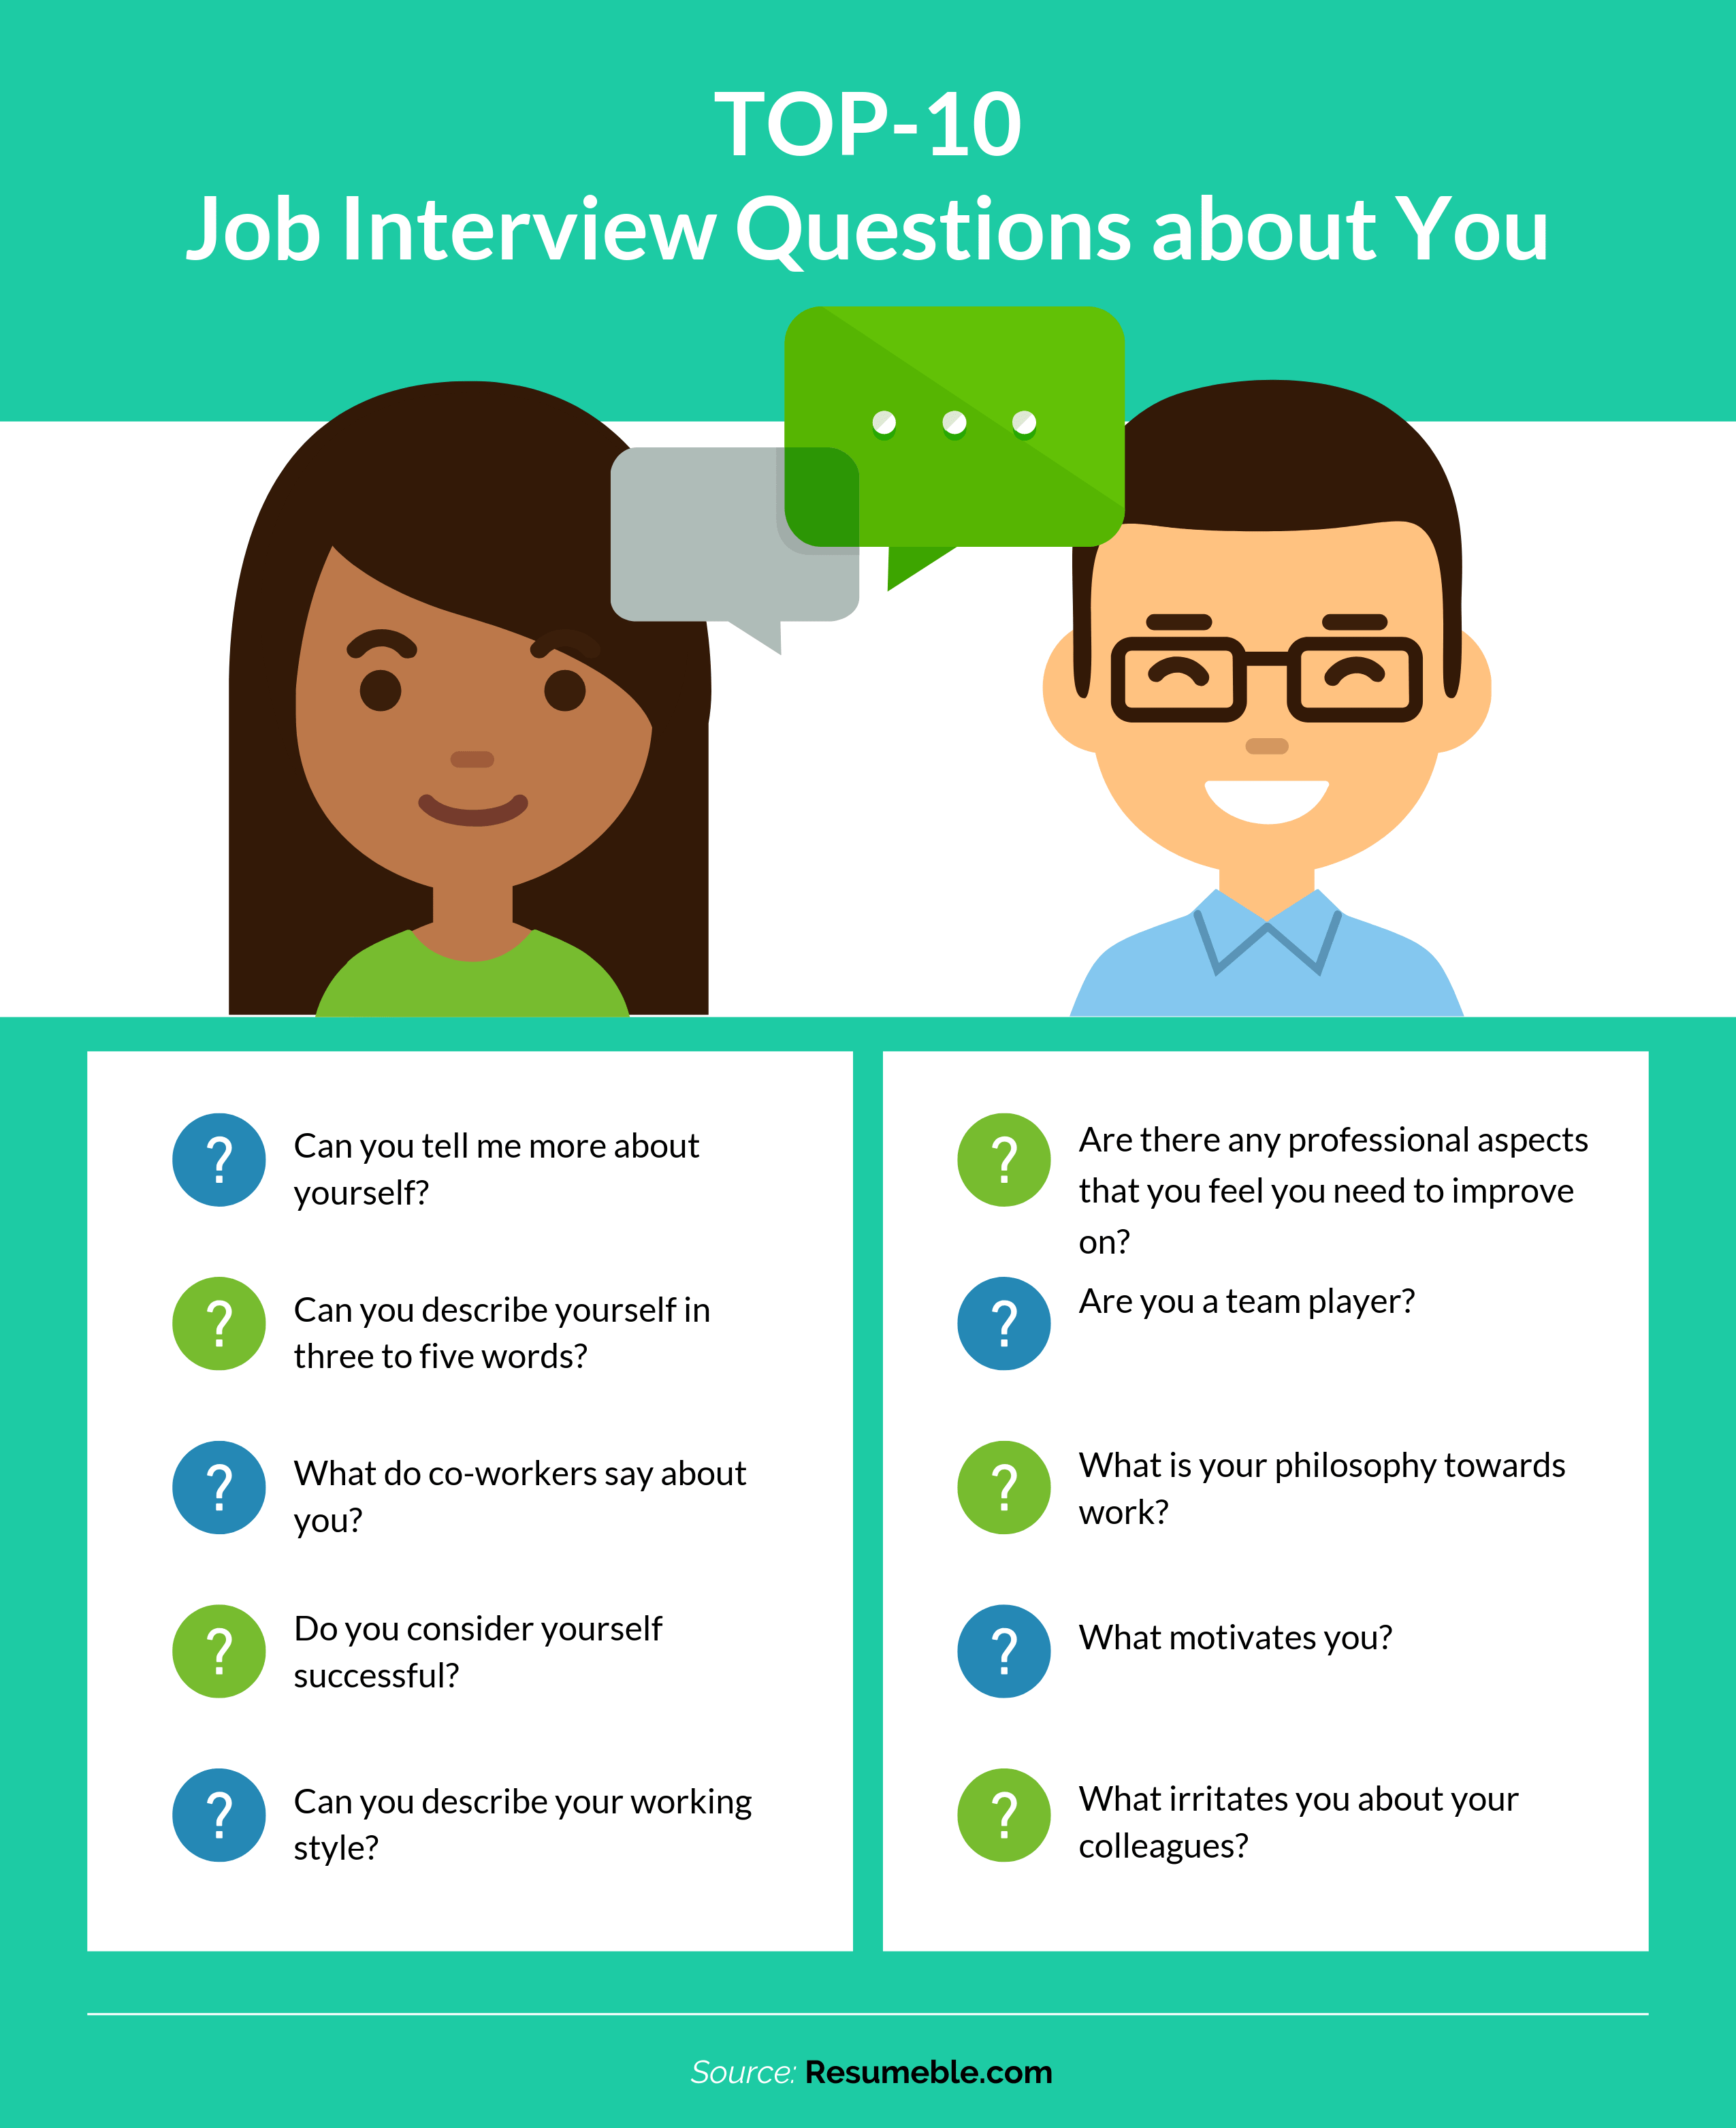 job interview questions about you